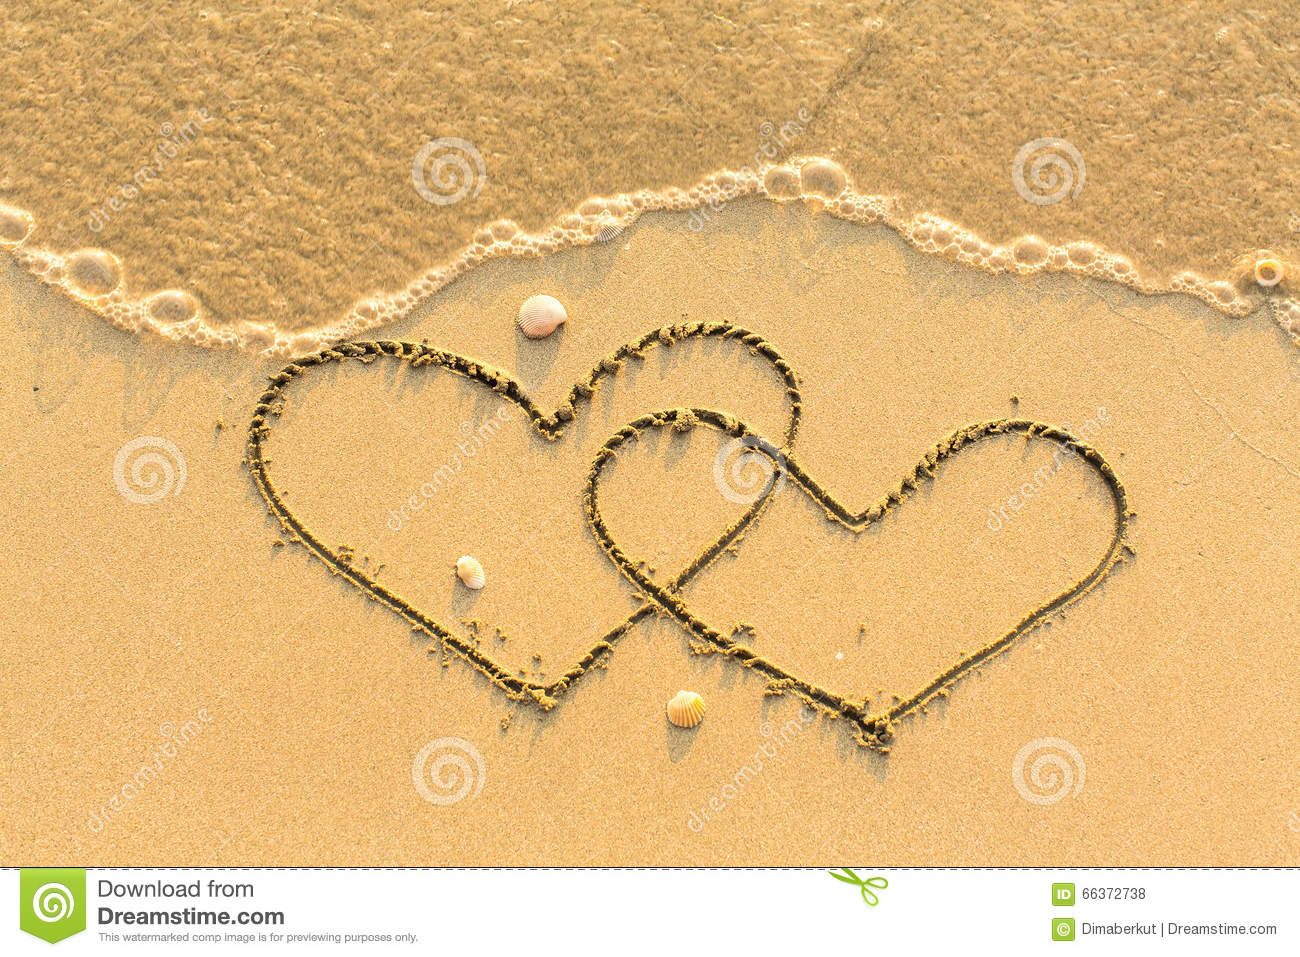 Two Hearts Drawn On The Sand Of A Beach. Love. Stock Photo ...